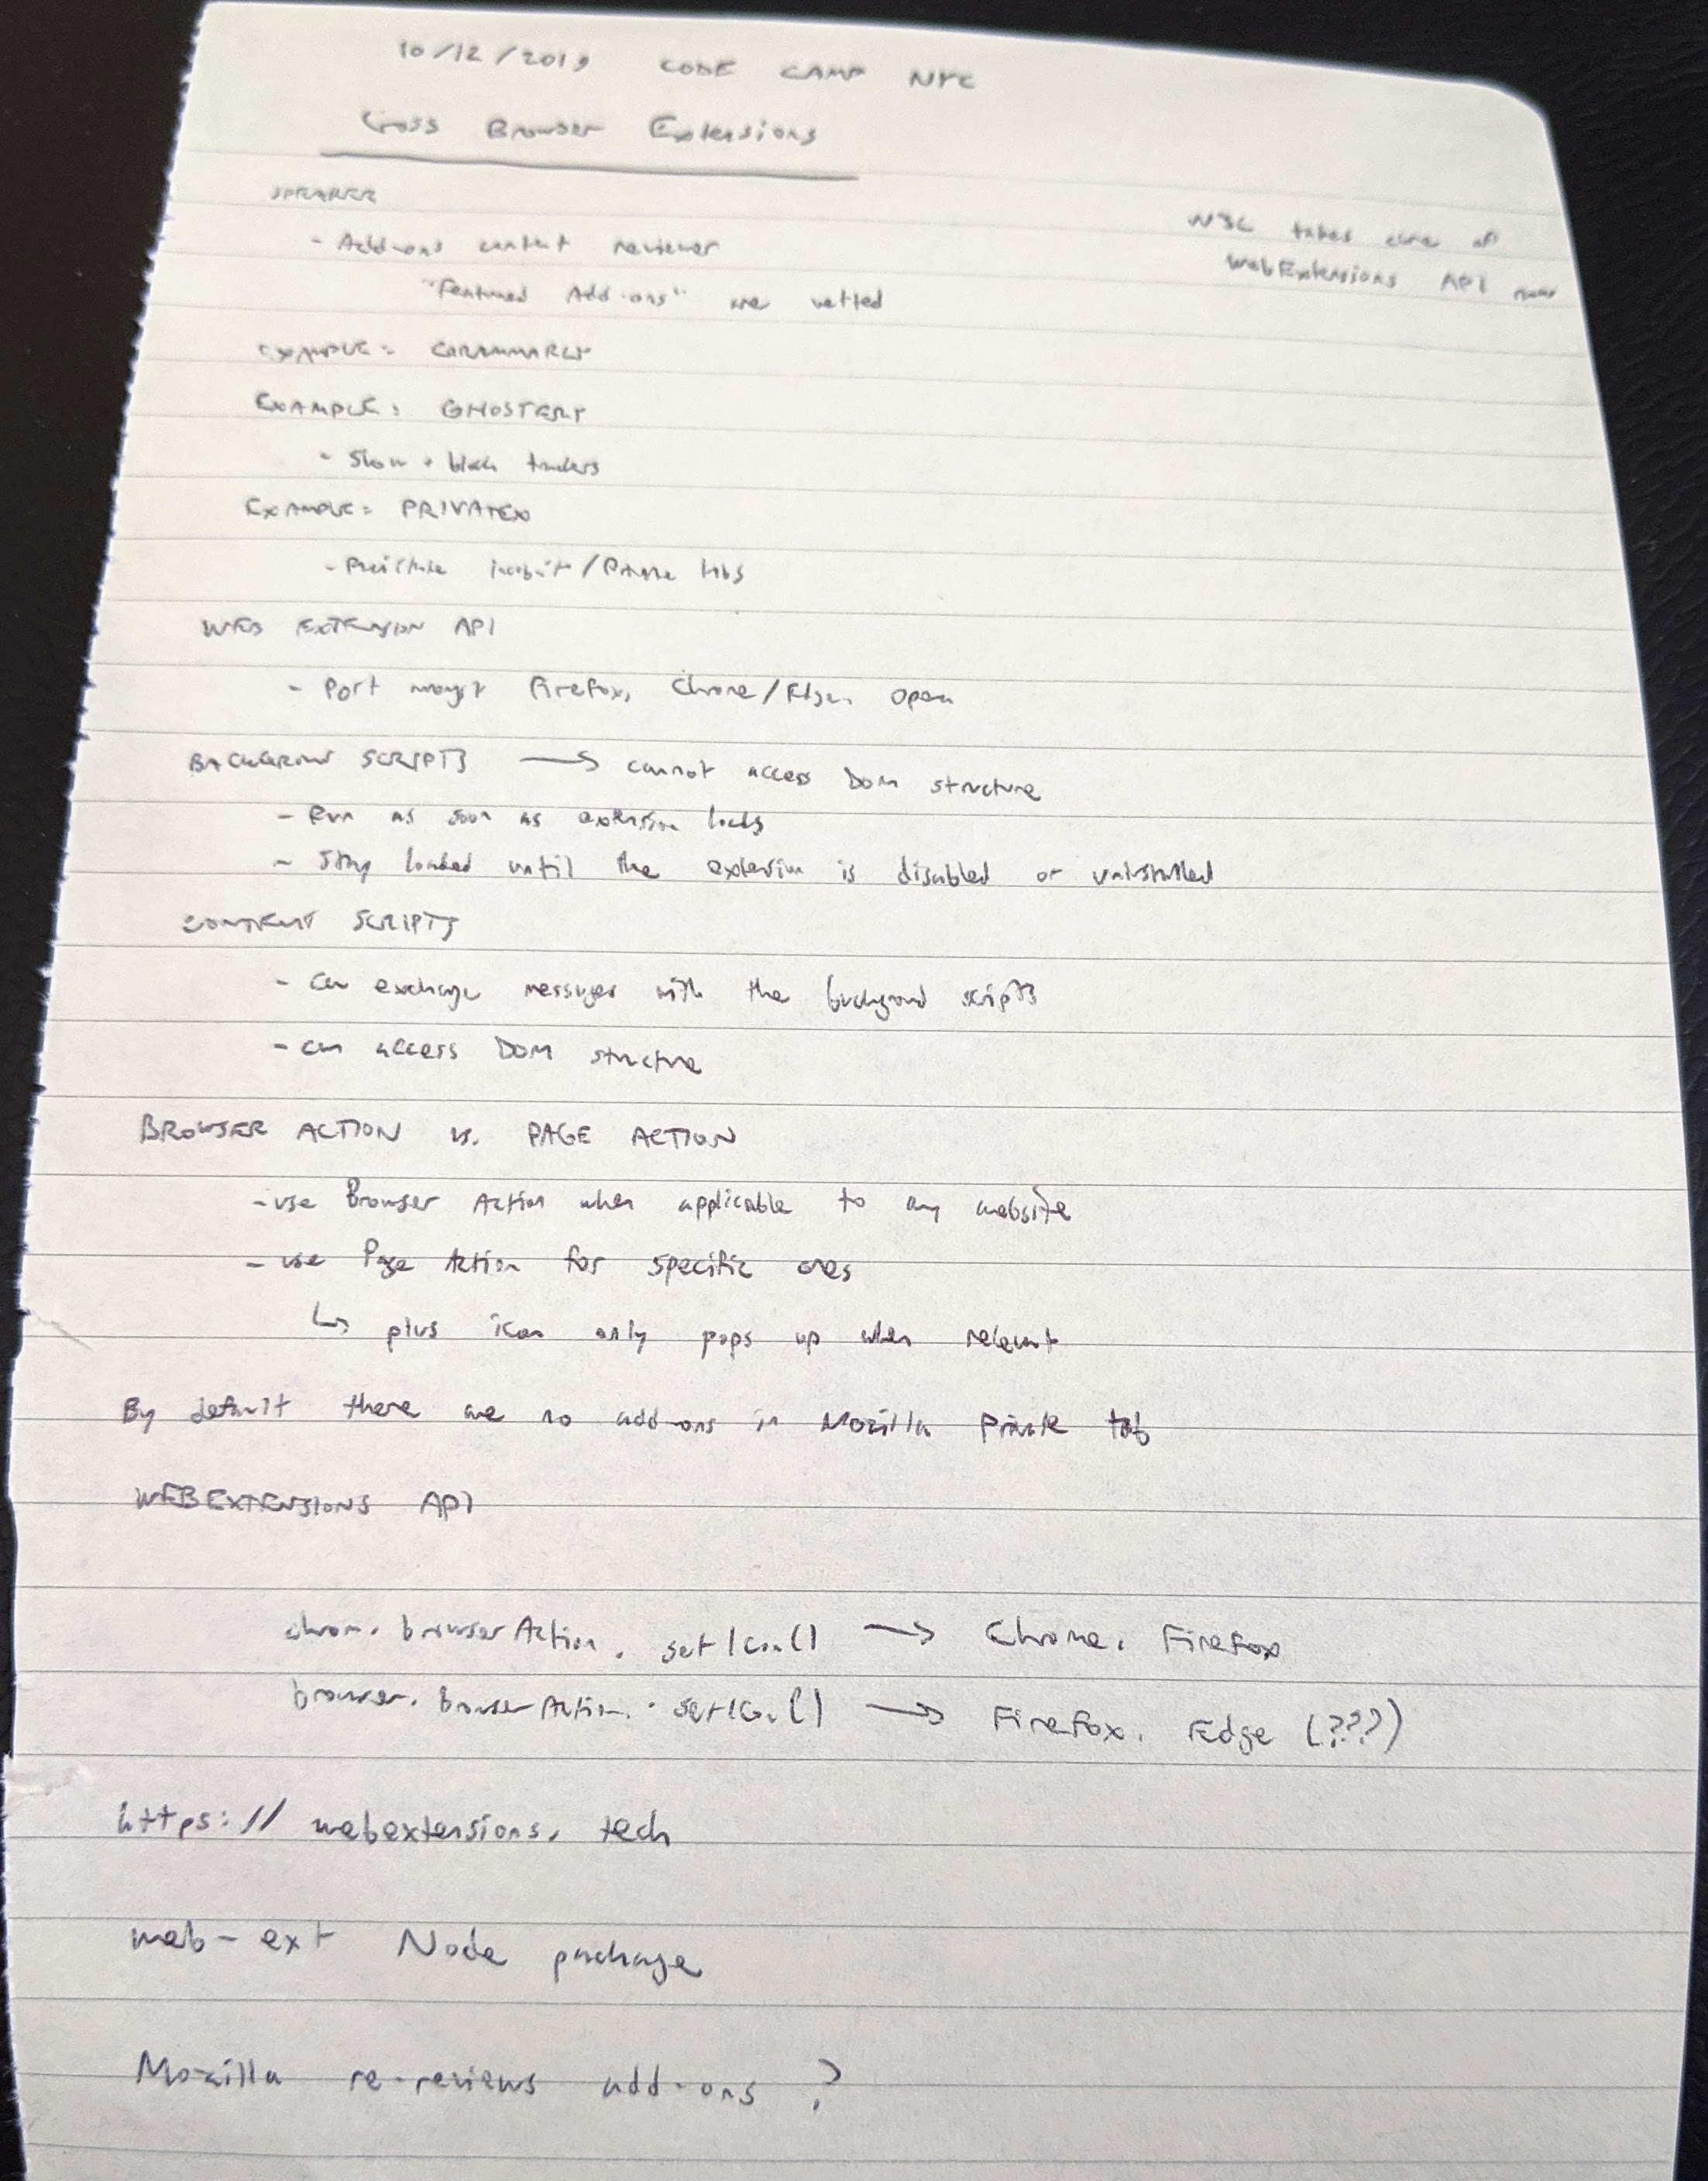 Browser extension notes